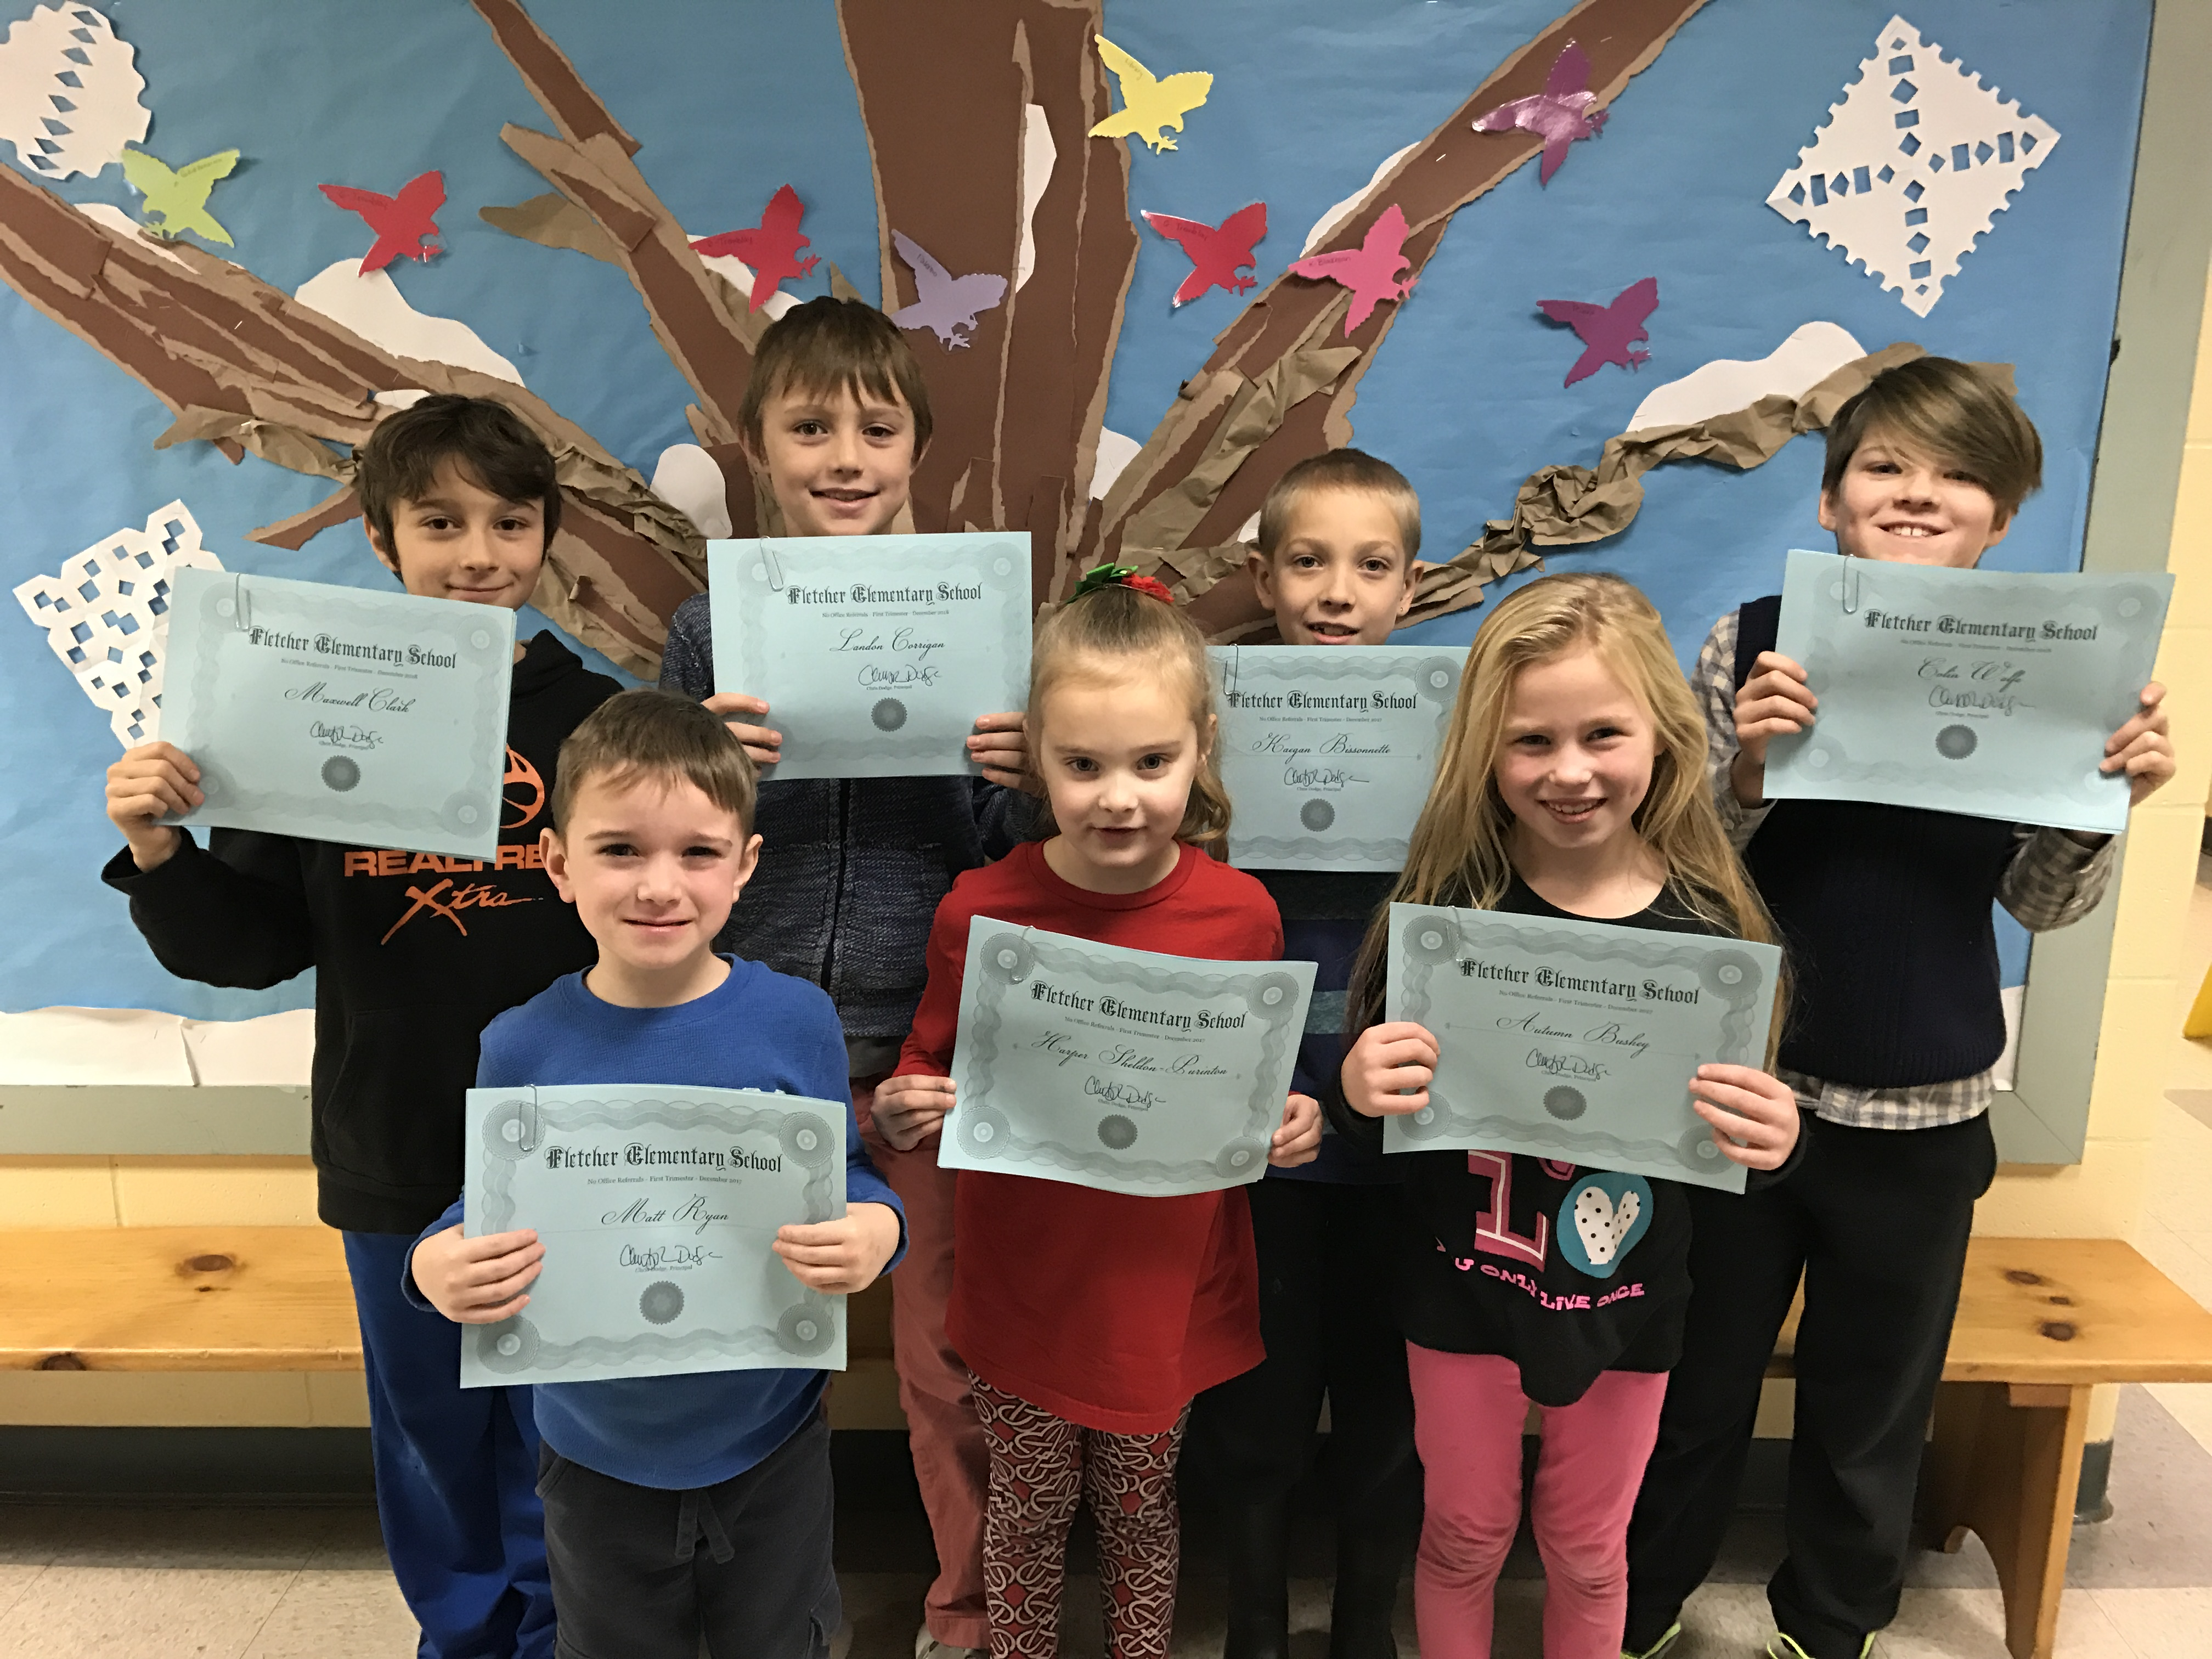 Fifty-eight Fletcher students celebrated having no office referrals during the first trimester this year. The school's trademark blue certificates marked the occasion. Here, one student from each class represents the larger group.